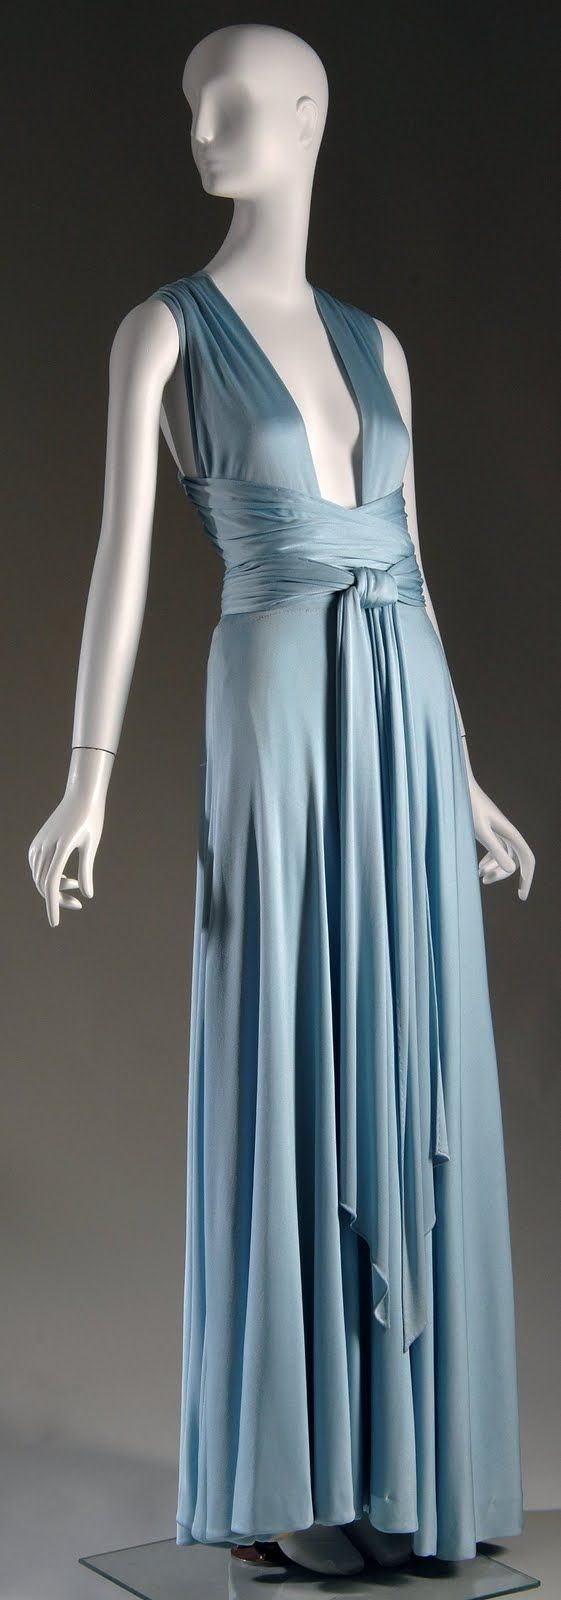 Halston evening dress is from 1972